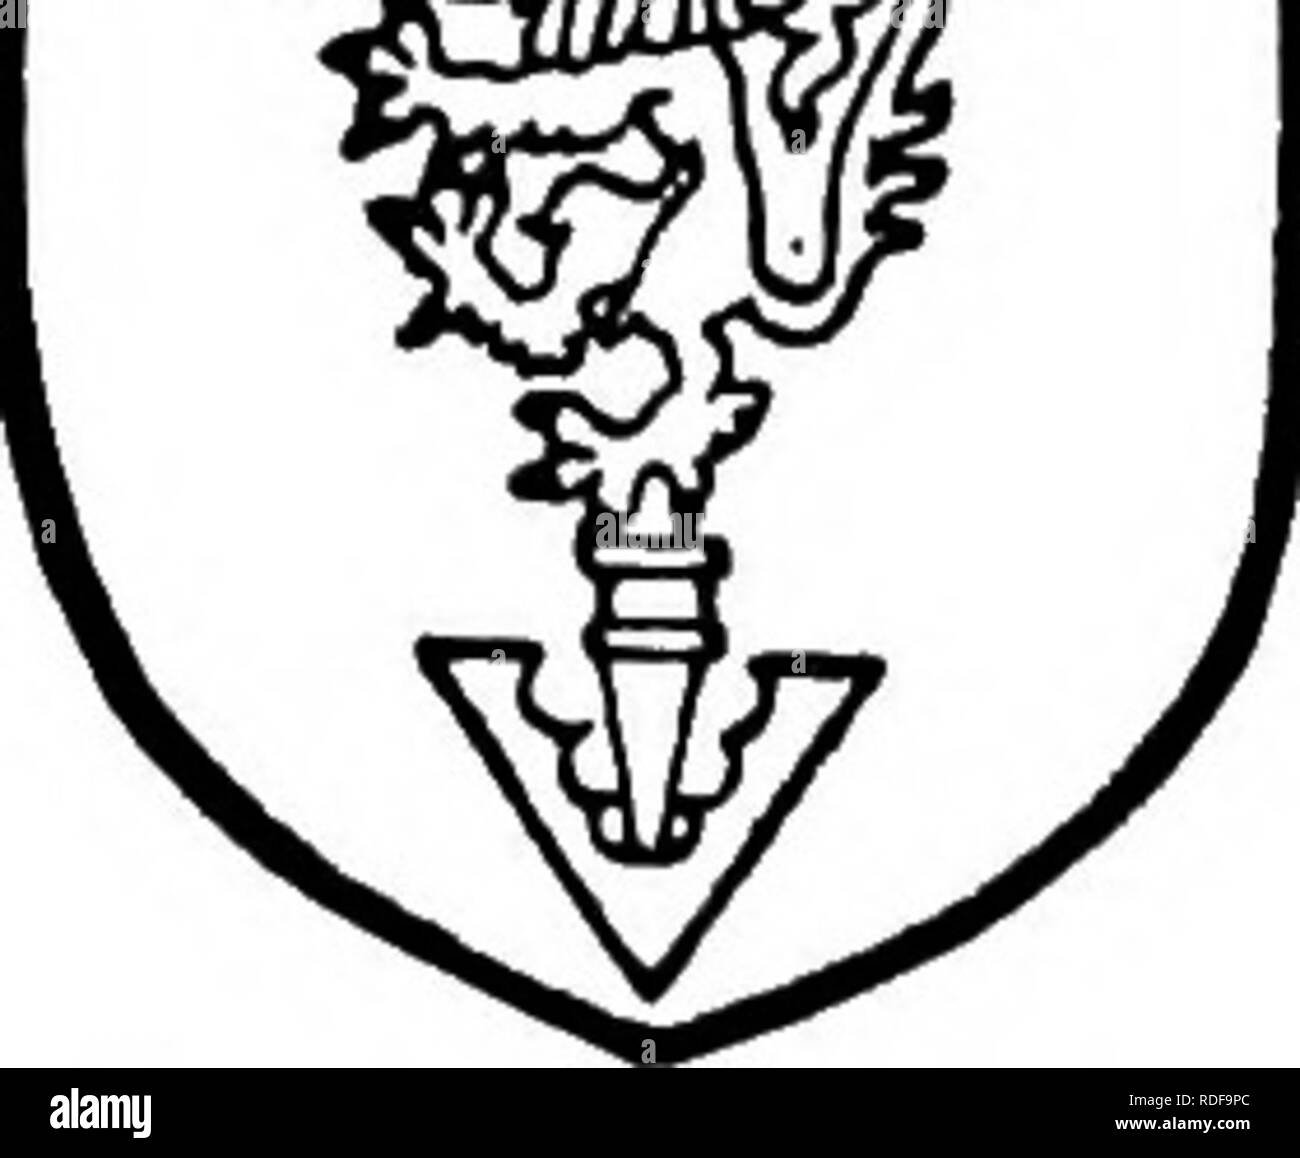 Lion Rampant Gules High Resolution Stock Photography And Images Alamy Golden crest design with rampant lions. https www alamy com the victoria history of the county of lancaster natural history t kenyon sable che veron engrailed be tween three crossespatonce egerton earl of wilton argent a lion rampant gules betiueen three pheons sable windycroft and snapecroft in kenyon from william de lawton he had sons william and robert the former died before his father leaving a daughter winwick margery who married successively robert de risley and william gillibrand the risleys appear to have secured most or all of the inheritance but william de sankey endowed his younger son robert with a portion in image232062276 html